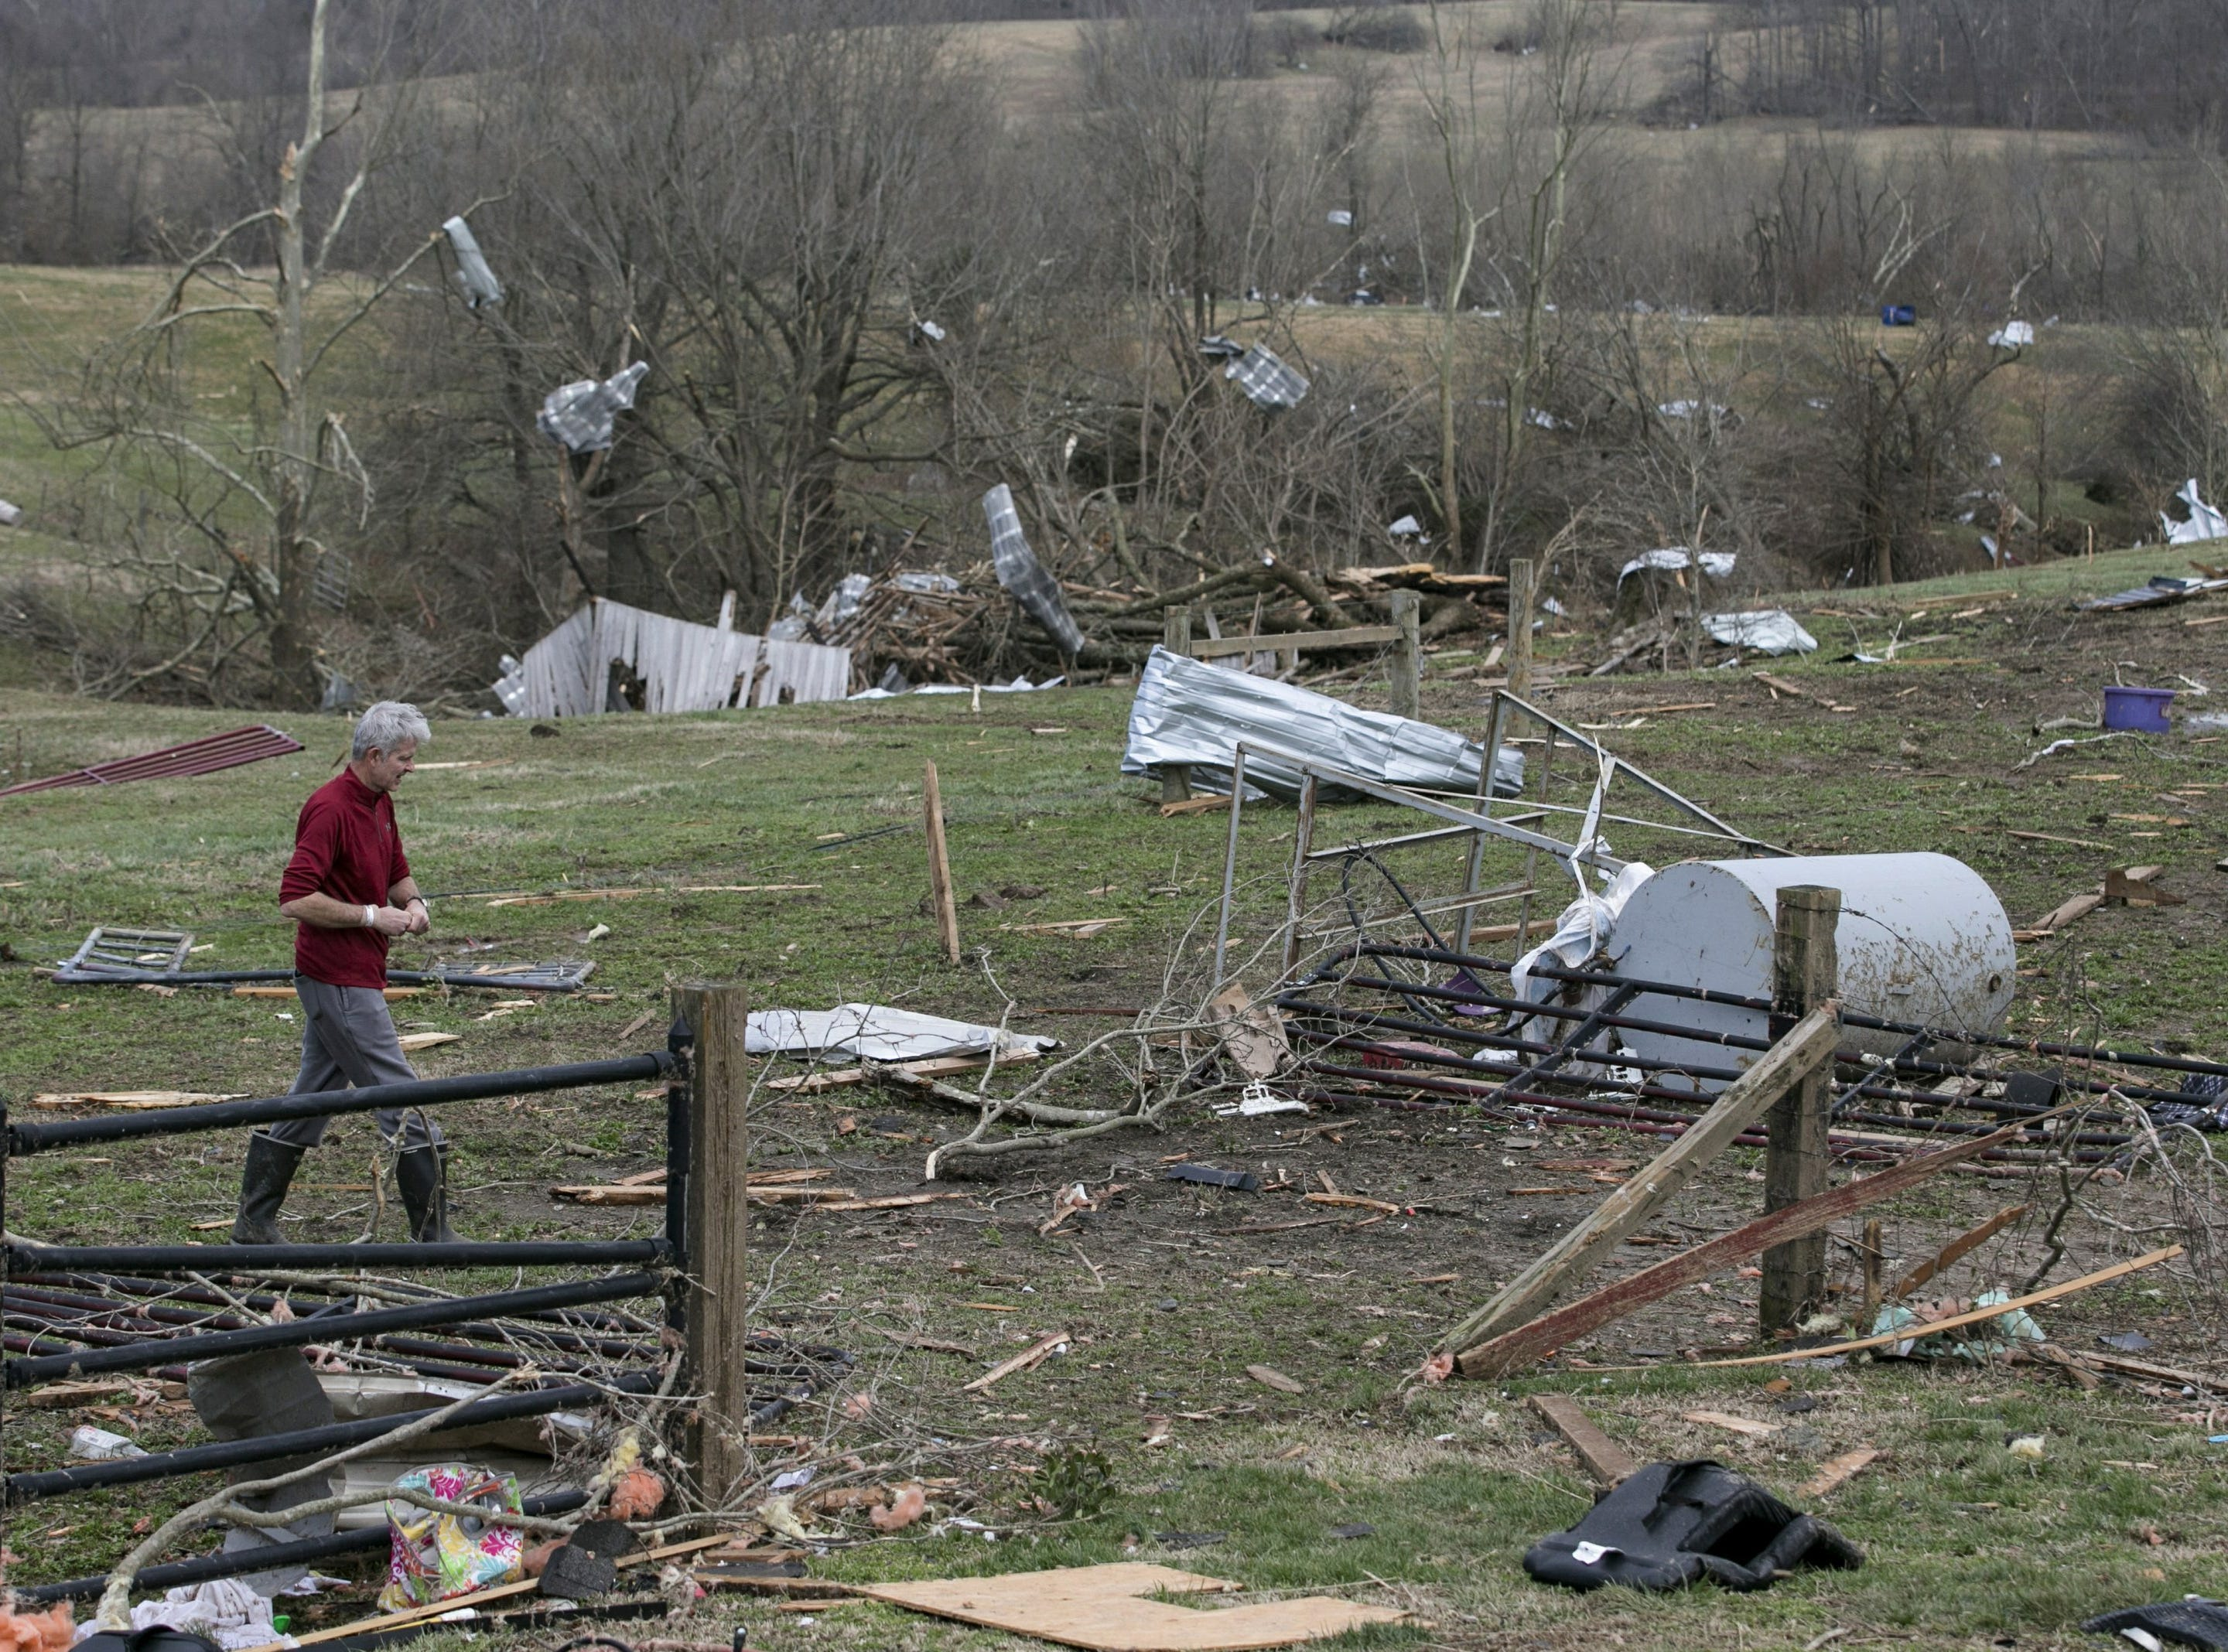 Debris litters a field after a tornado touched down in McCracken County, Ky., on Thursday, March 14, 2019.